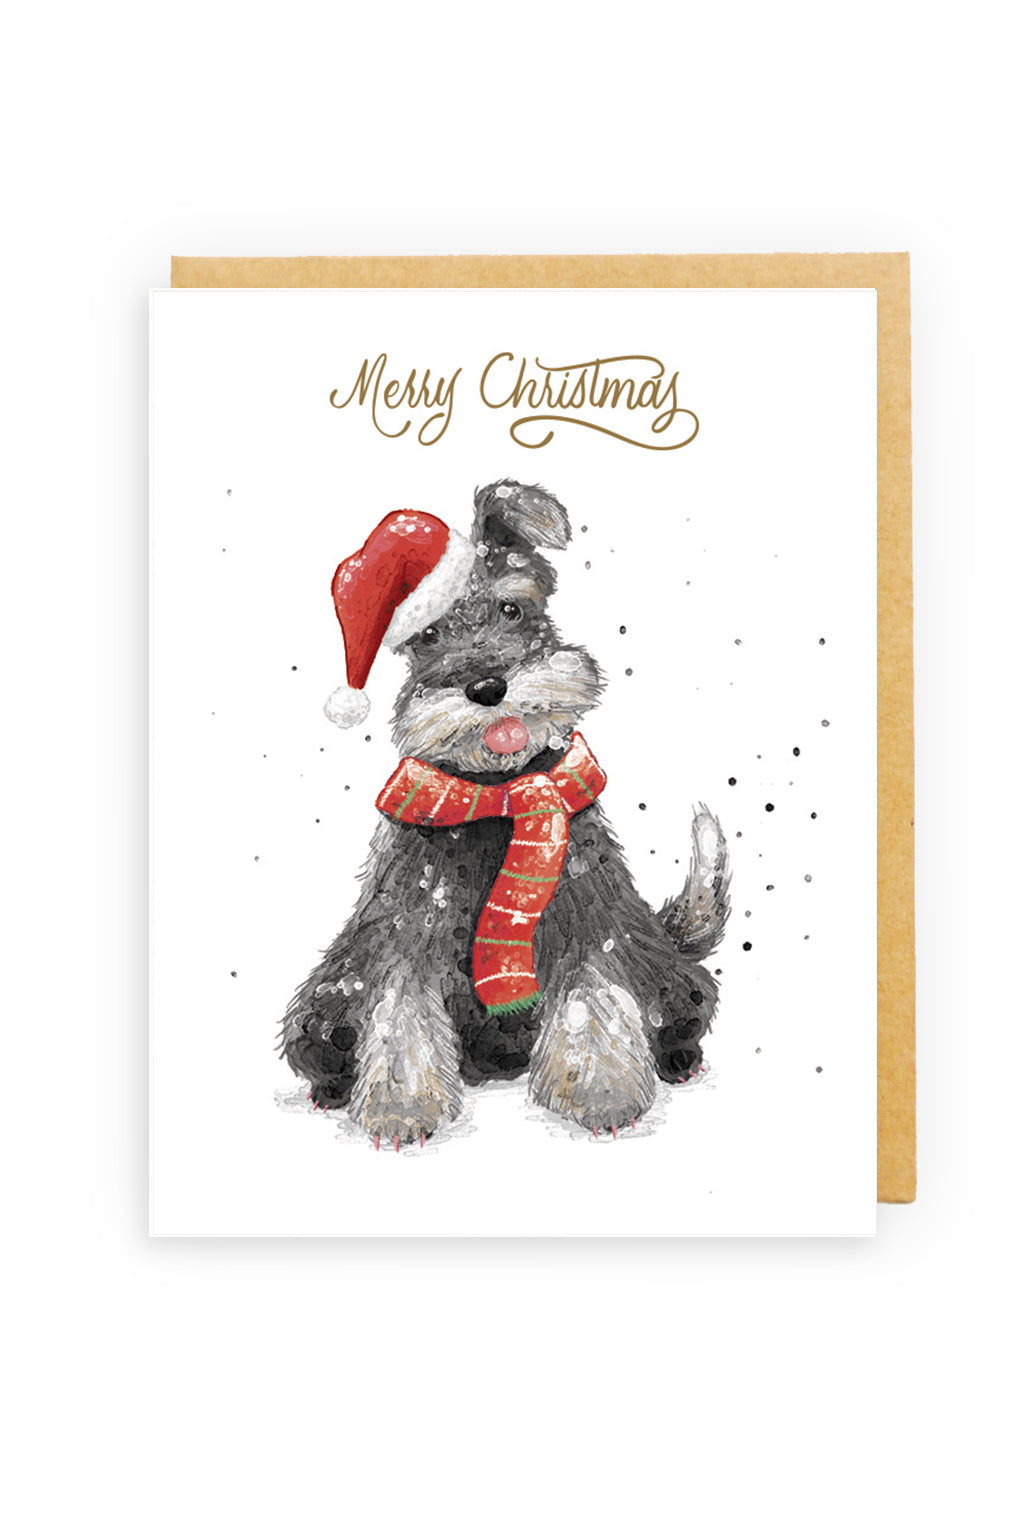 Squirrel Design Studio-Christmas Mini-Schnauser - GOLD FOIL Christmas Card-Mott and Mulberry